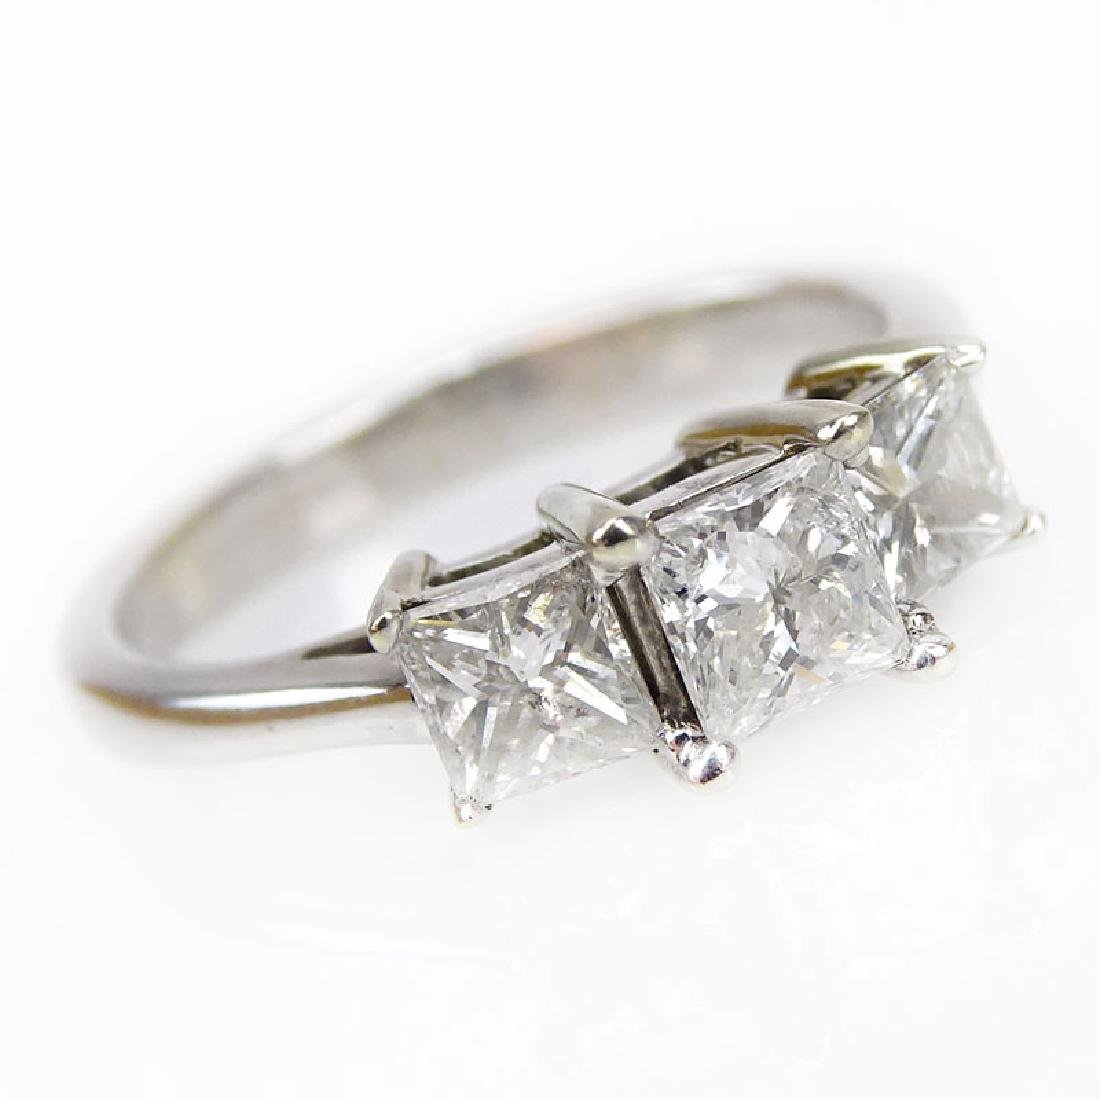 Vintage Approx. 1.0 Carat TW Princess Cut Diamond and